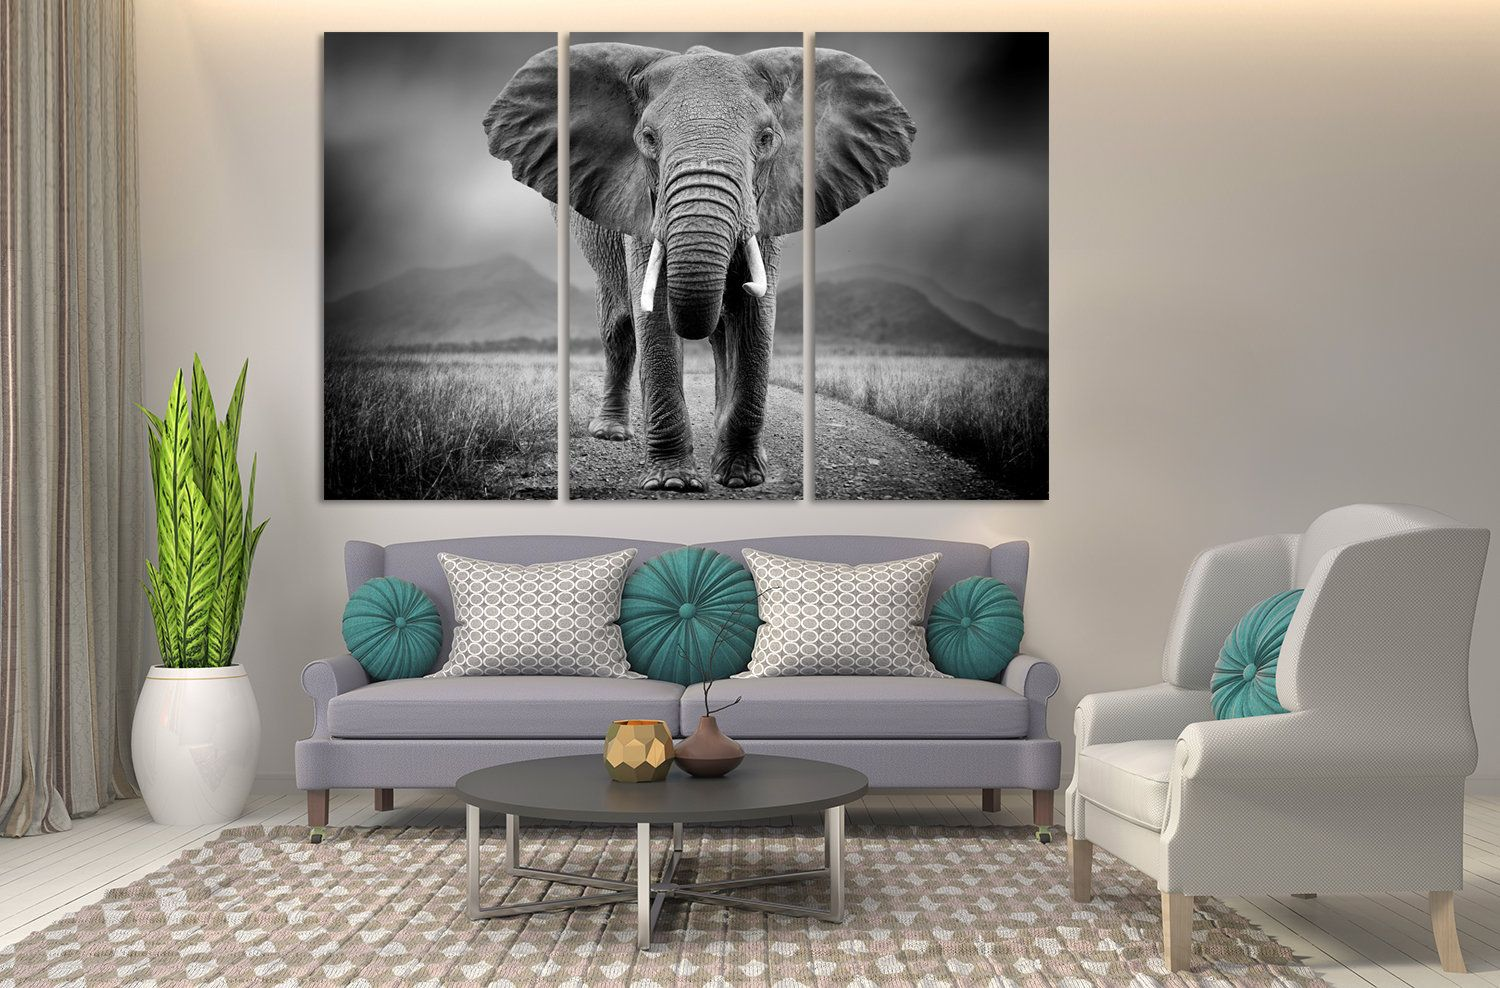 Black And White African Elephant Extra Large Canvas Wall Art Elephant Wall Art Housewarming Gift Extral Large Canvas Wall Art Elephant Wall Art Wall Canvas